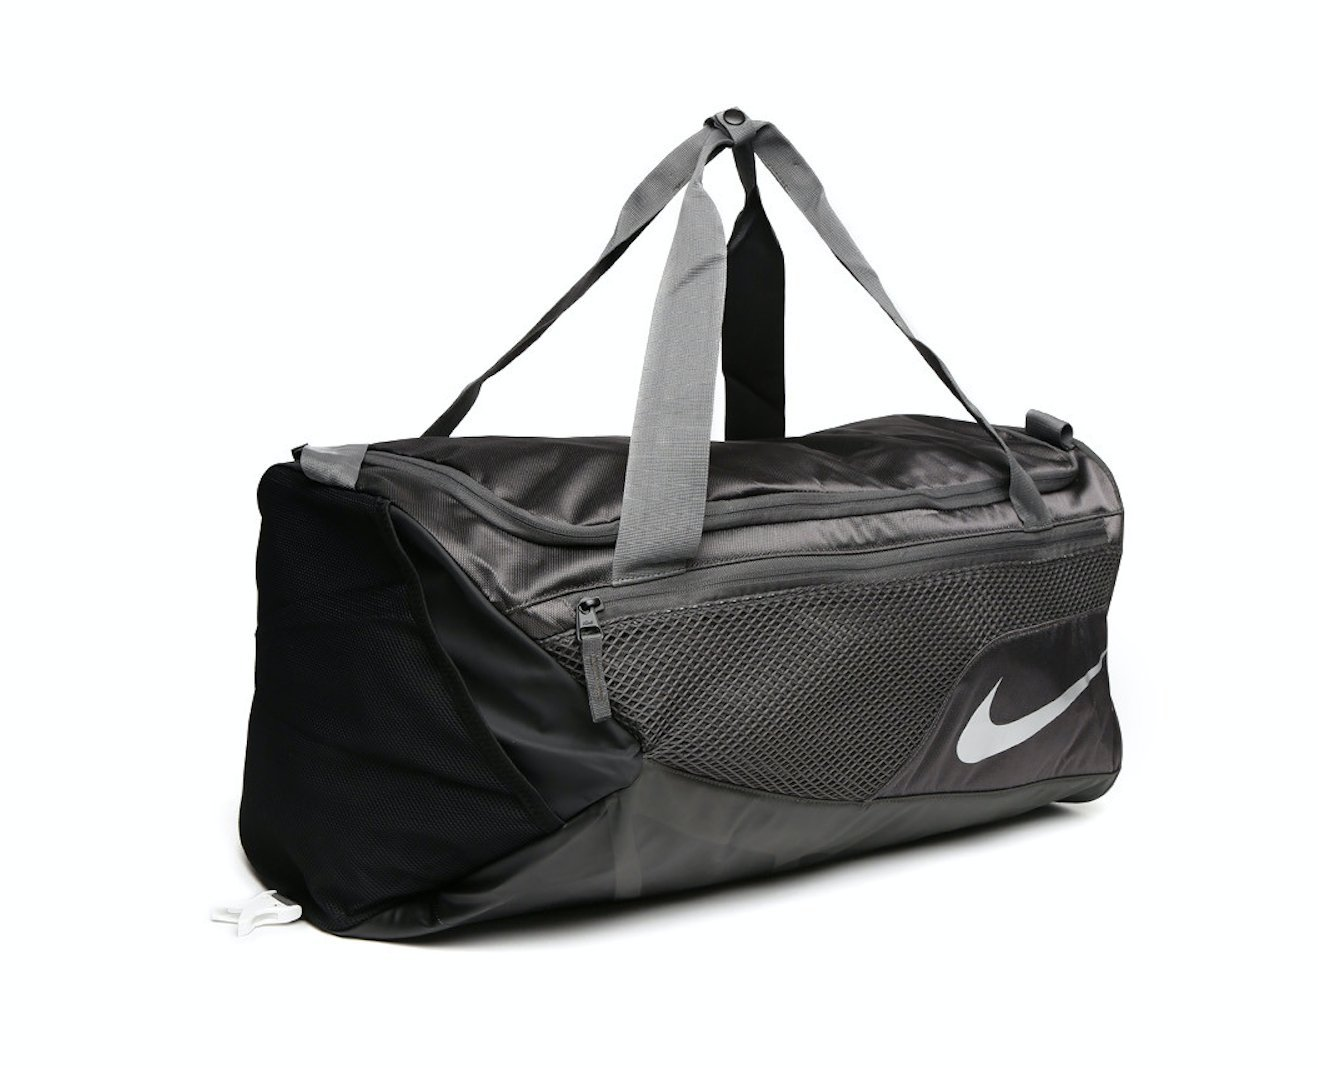 Nike Men's Vapor Max Air 2.0 Sports Bag, Midnight FogBlack